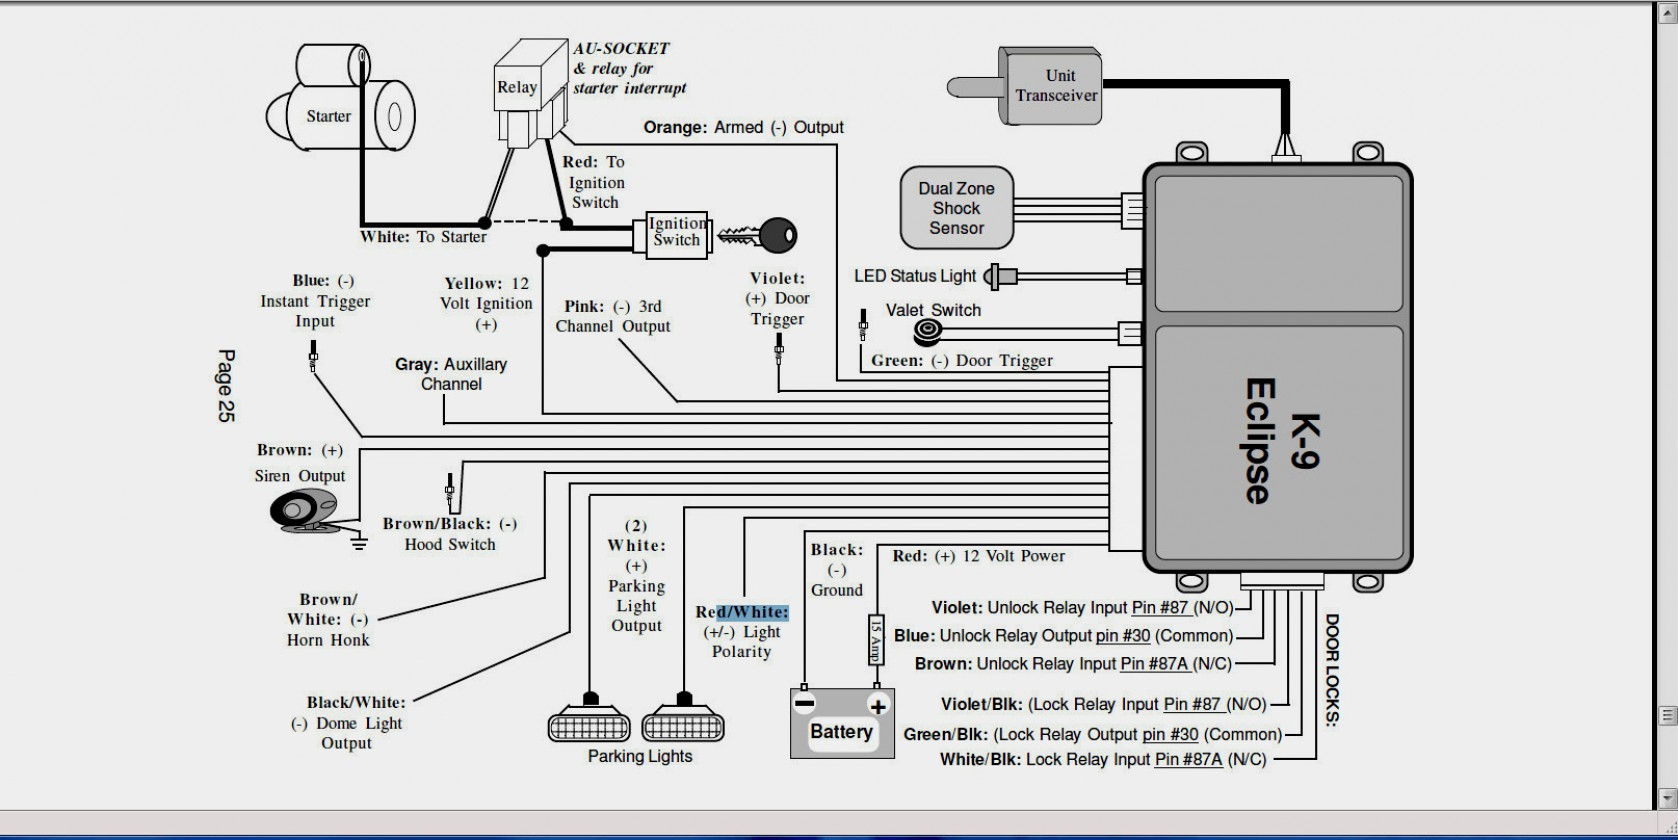 Compustar Wiring Diagram - Wiring Diagrams - Viper Remote Start Wiring Diagram